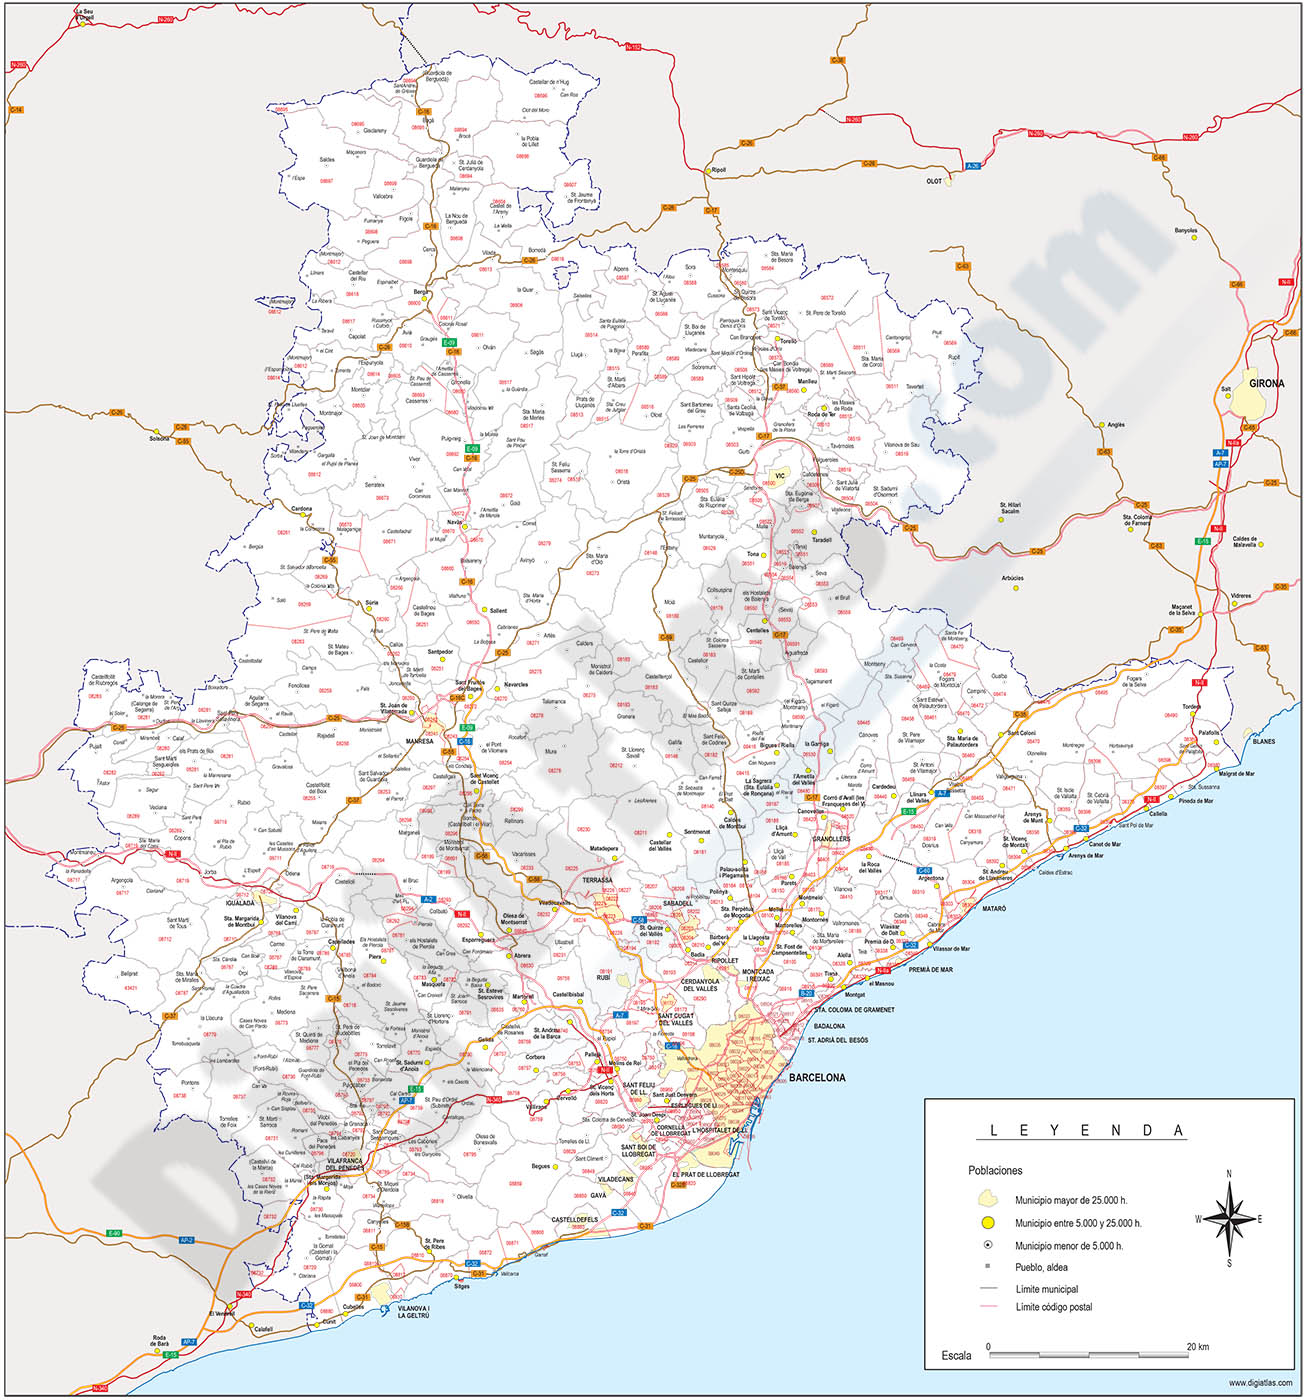 Barcelona - province map with municipalities, postal codes and roads